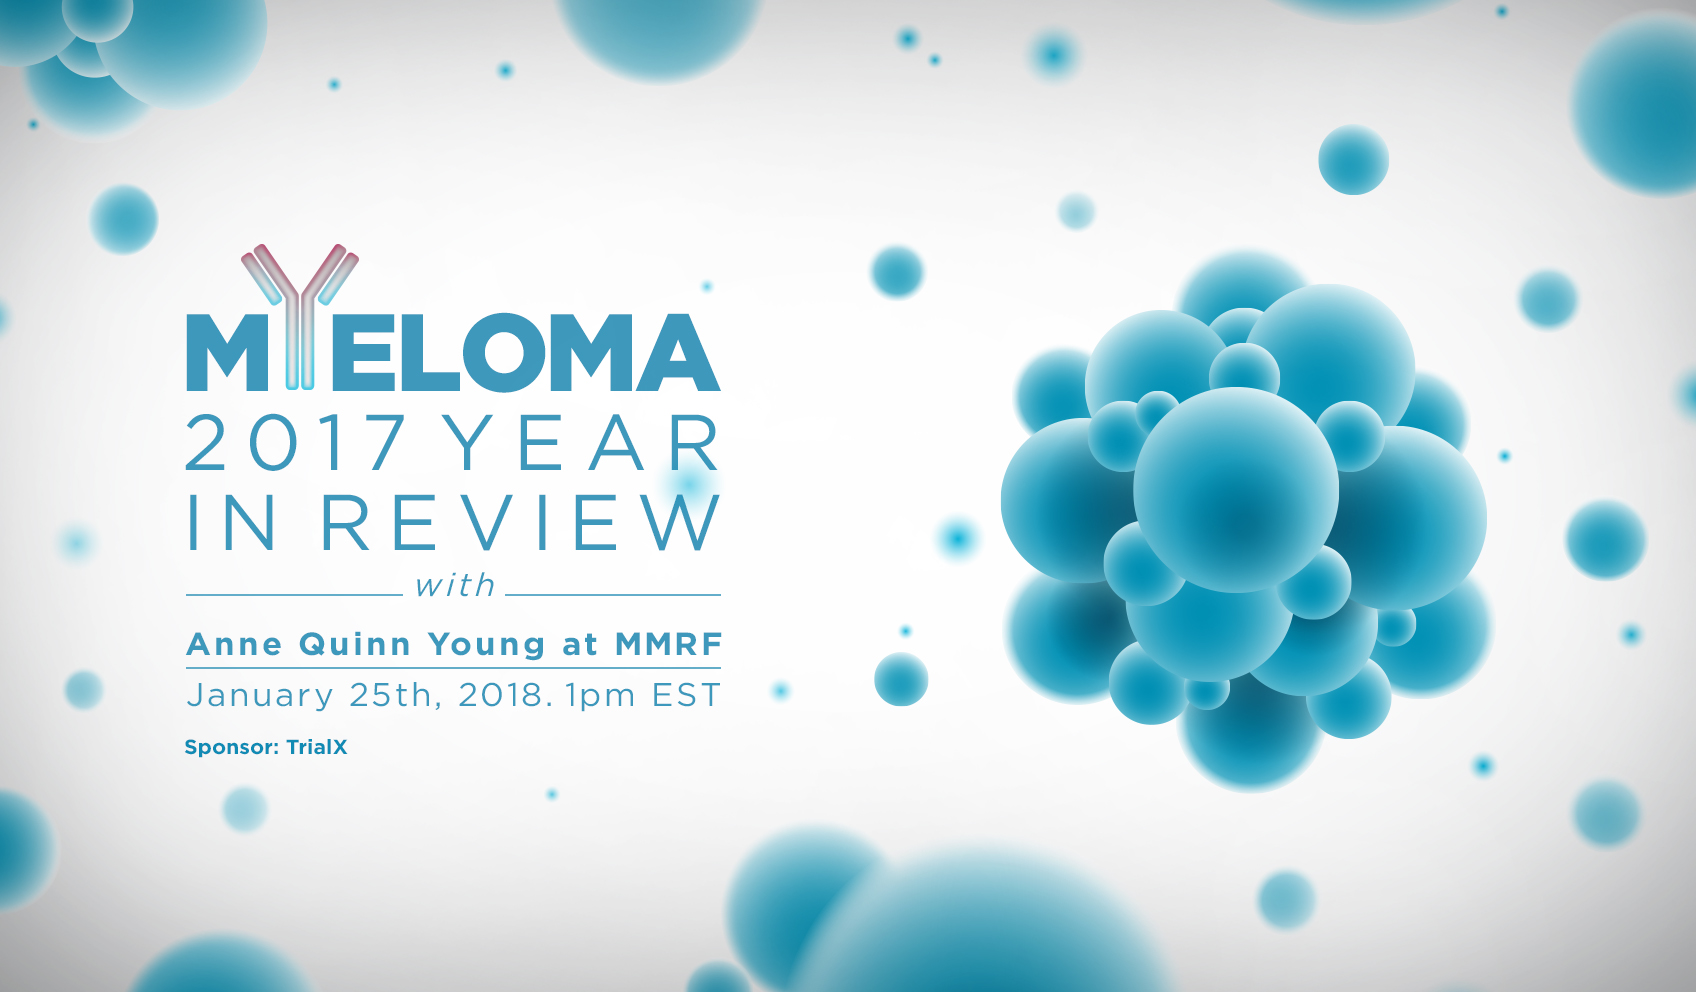 Myeloma 2017 – Year in Review with MMRF